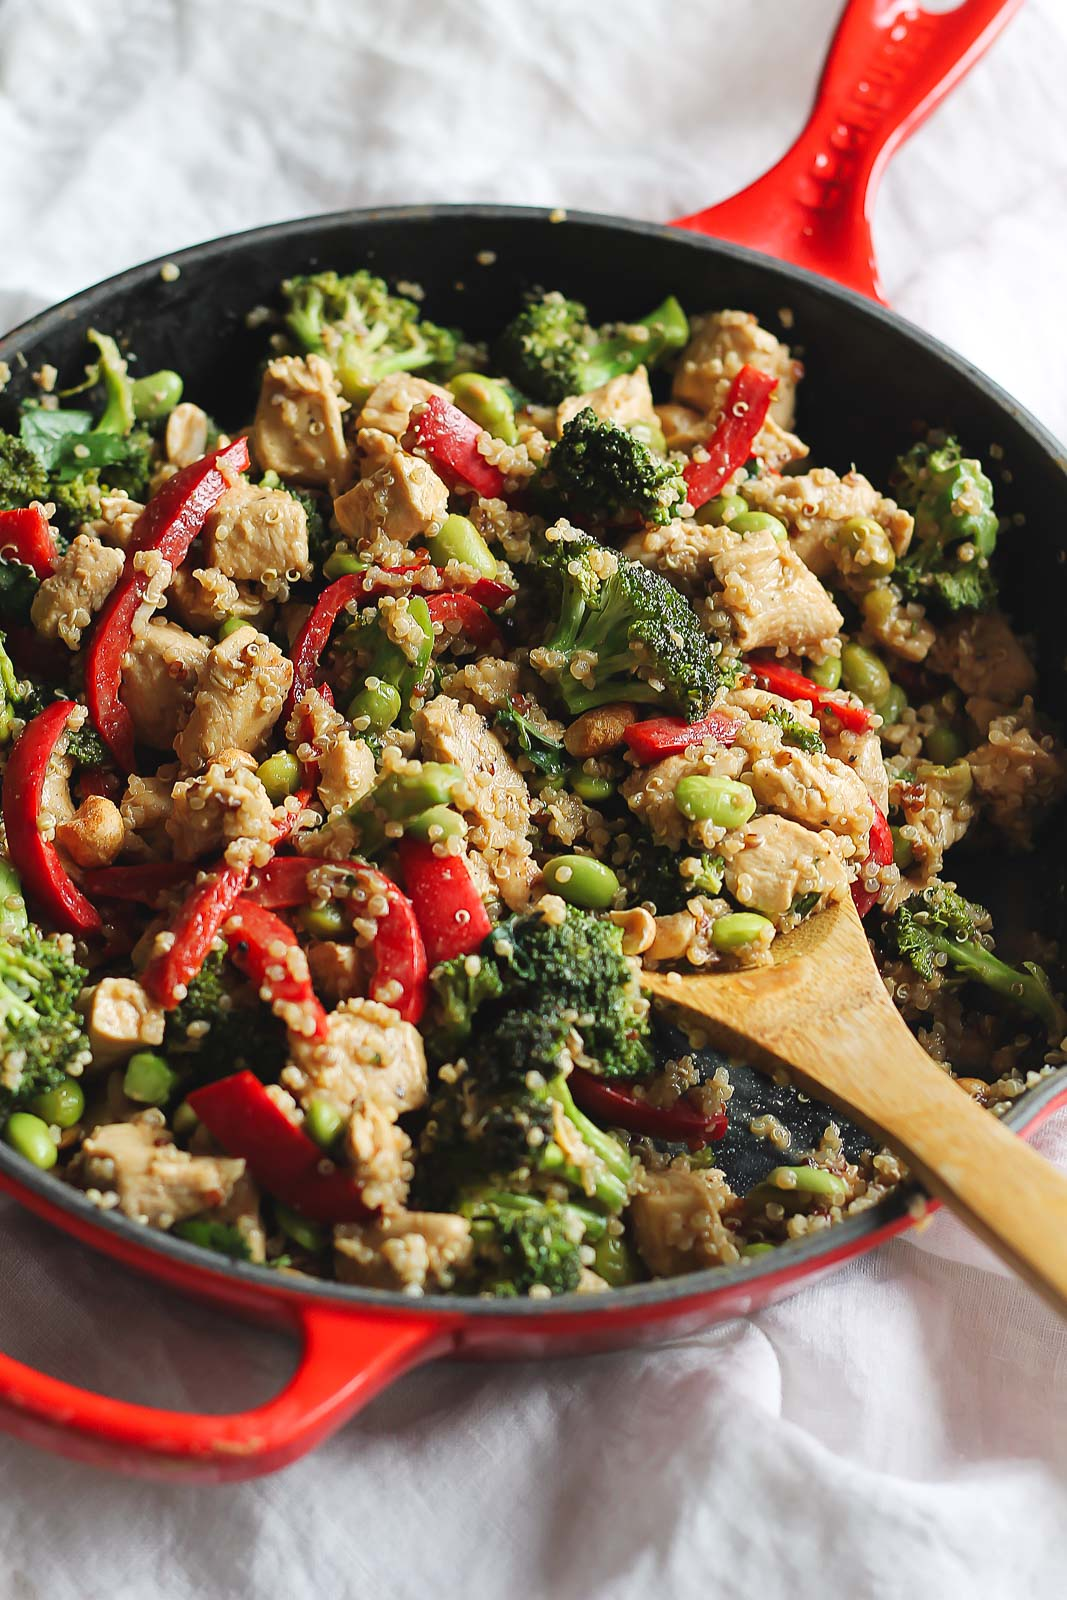 Protein packed thai peanut chicken & edamame quinoa stir fry with an addicting peanut sauce. Nutritious, naturally gluten free & ready in only 30 minutes!